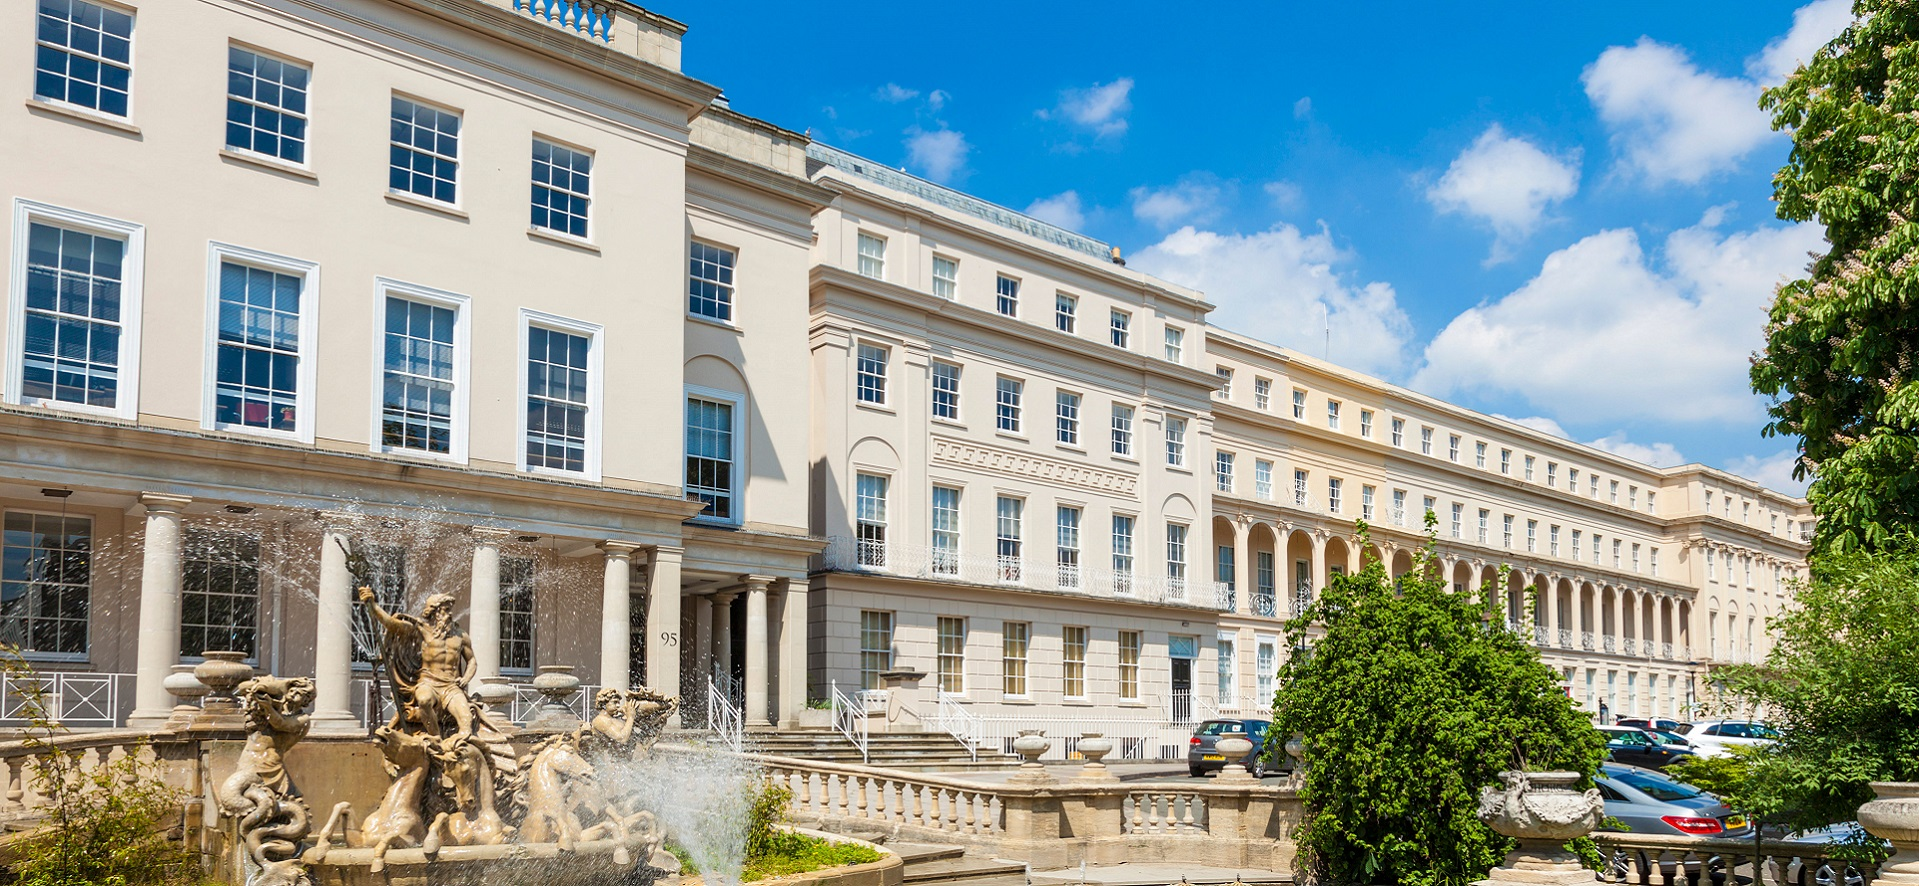 Everything you need to know about living in Cheltenham